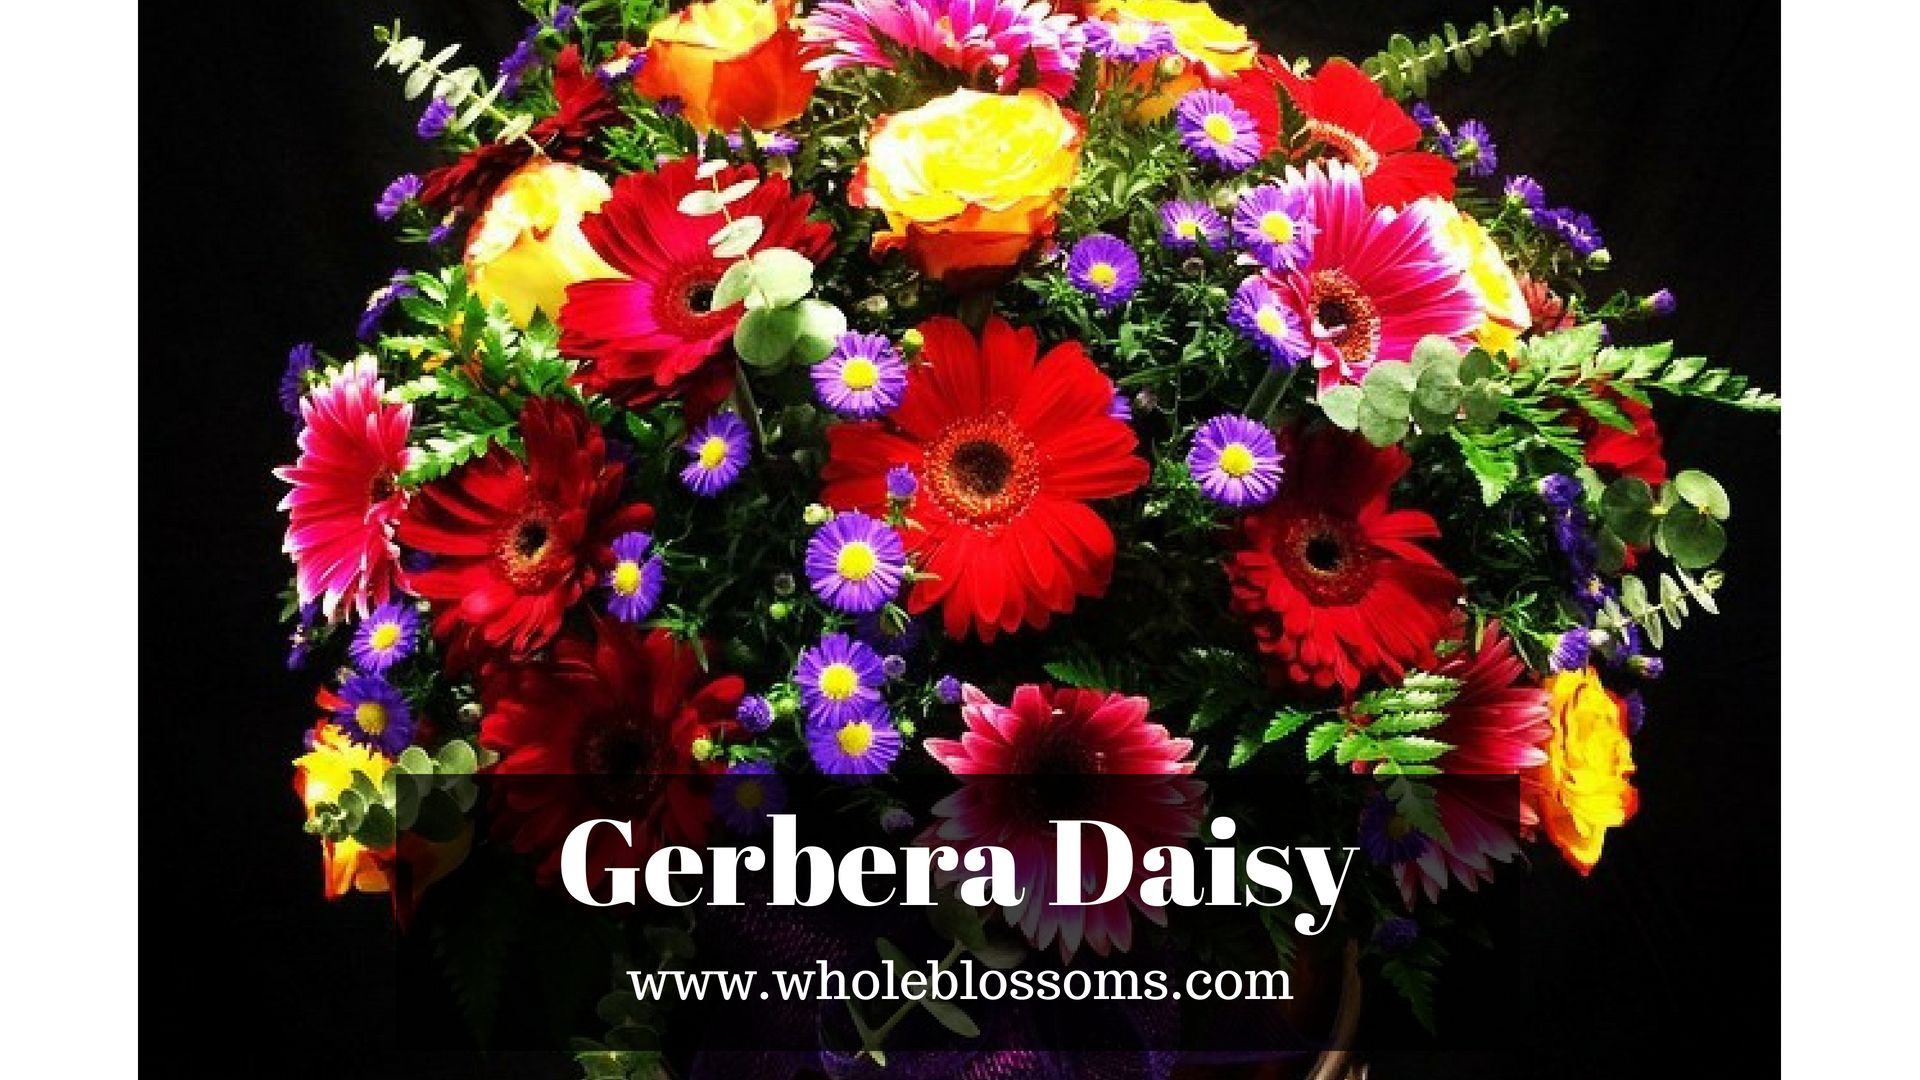 Gerbera daisy flowers look natural when used in decoration you can gerbera daisy flowers look natural when used in decoration you can use gerbera flowers for all type of decoration and it also uses in wedding bouquets izmirmasajfo